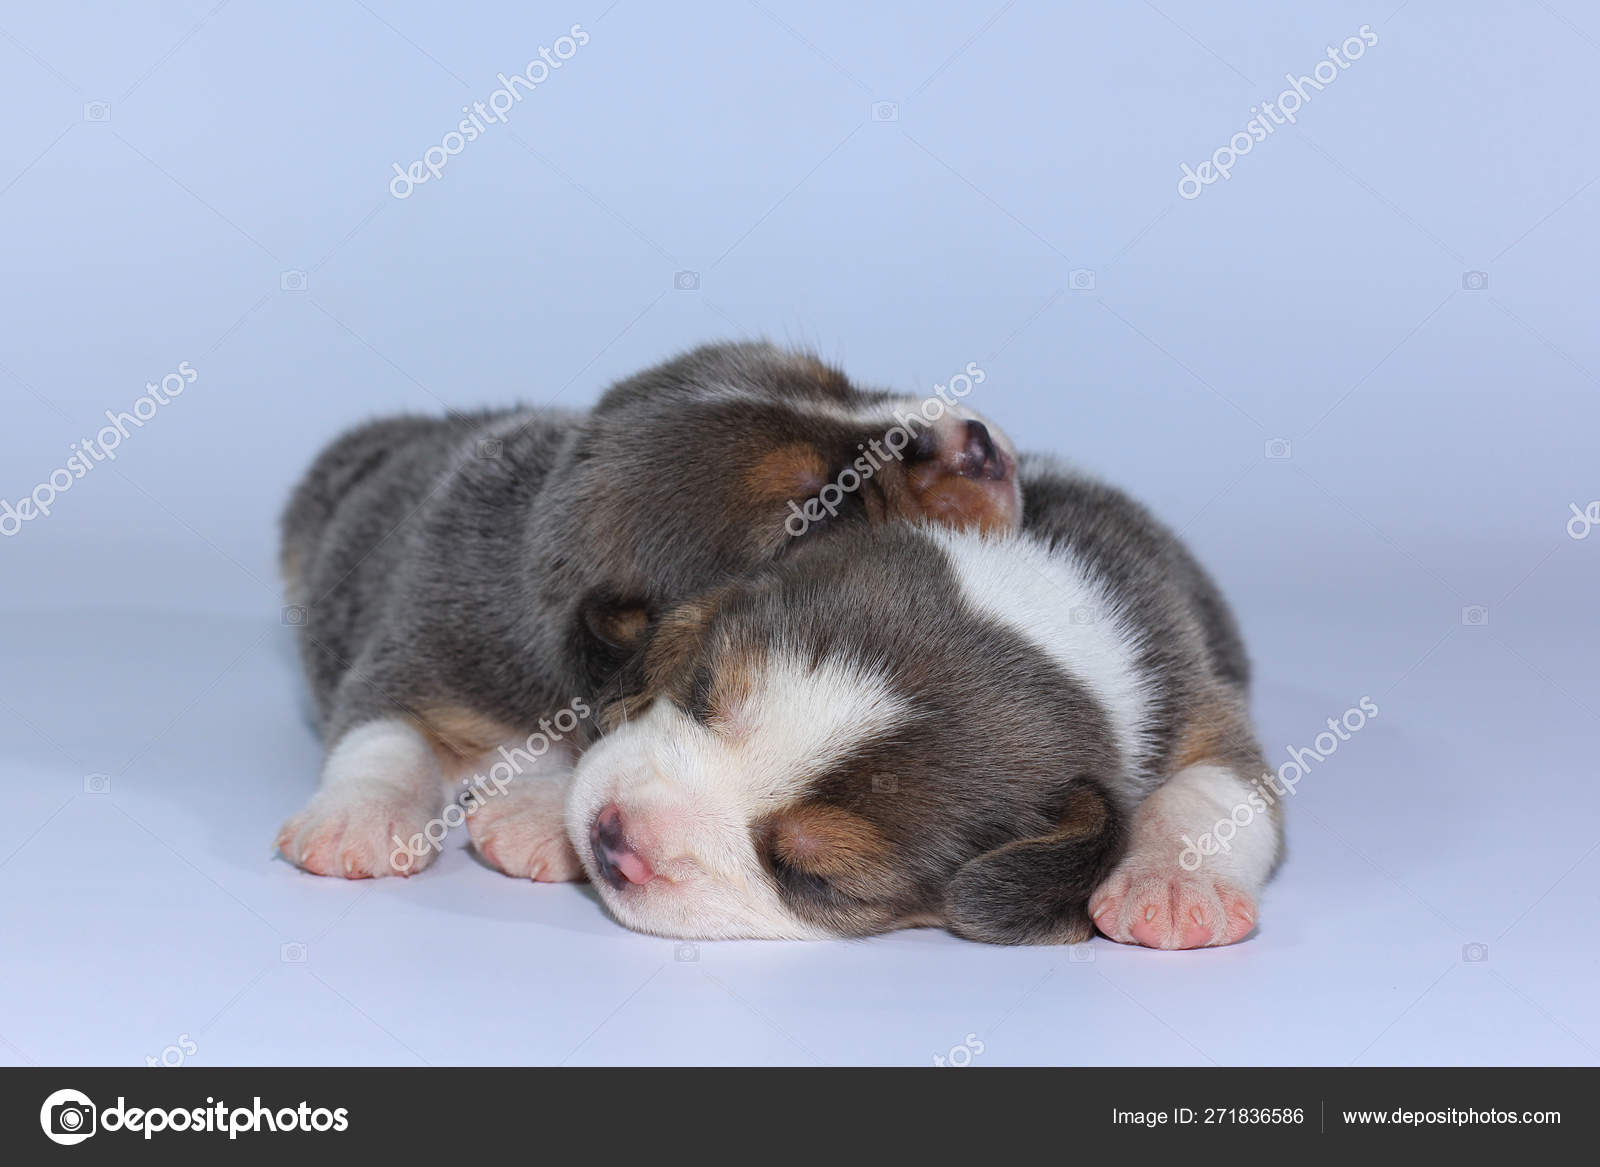 Silver Tri Color Beagle Puppy Sleeping Looking First Time Stock Photo C S Thanawathreborn Gmail Com 271836586